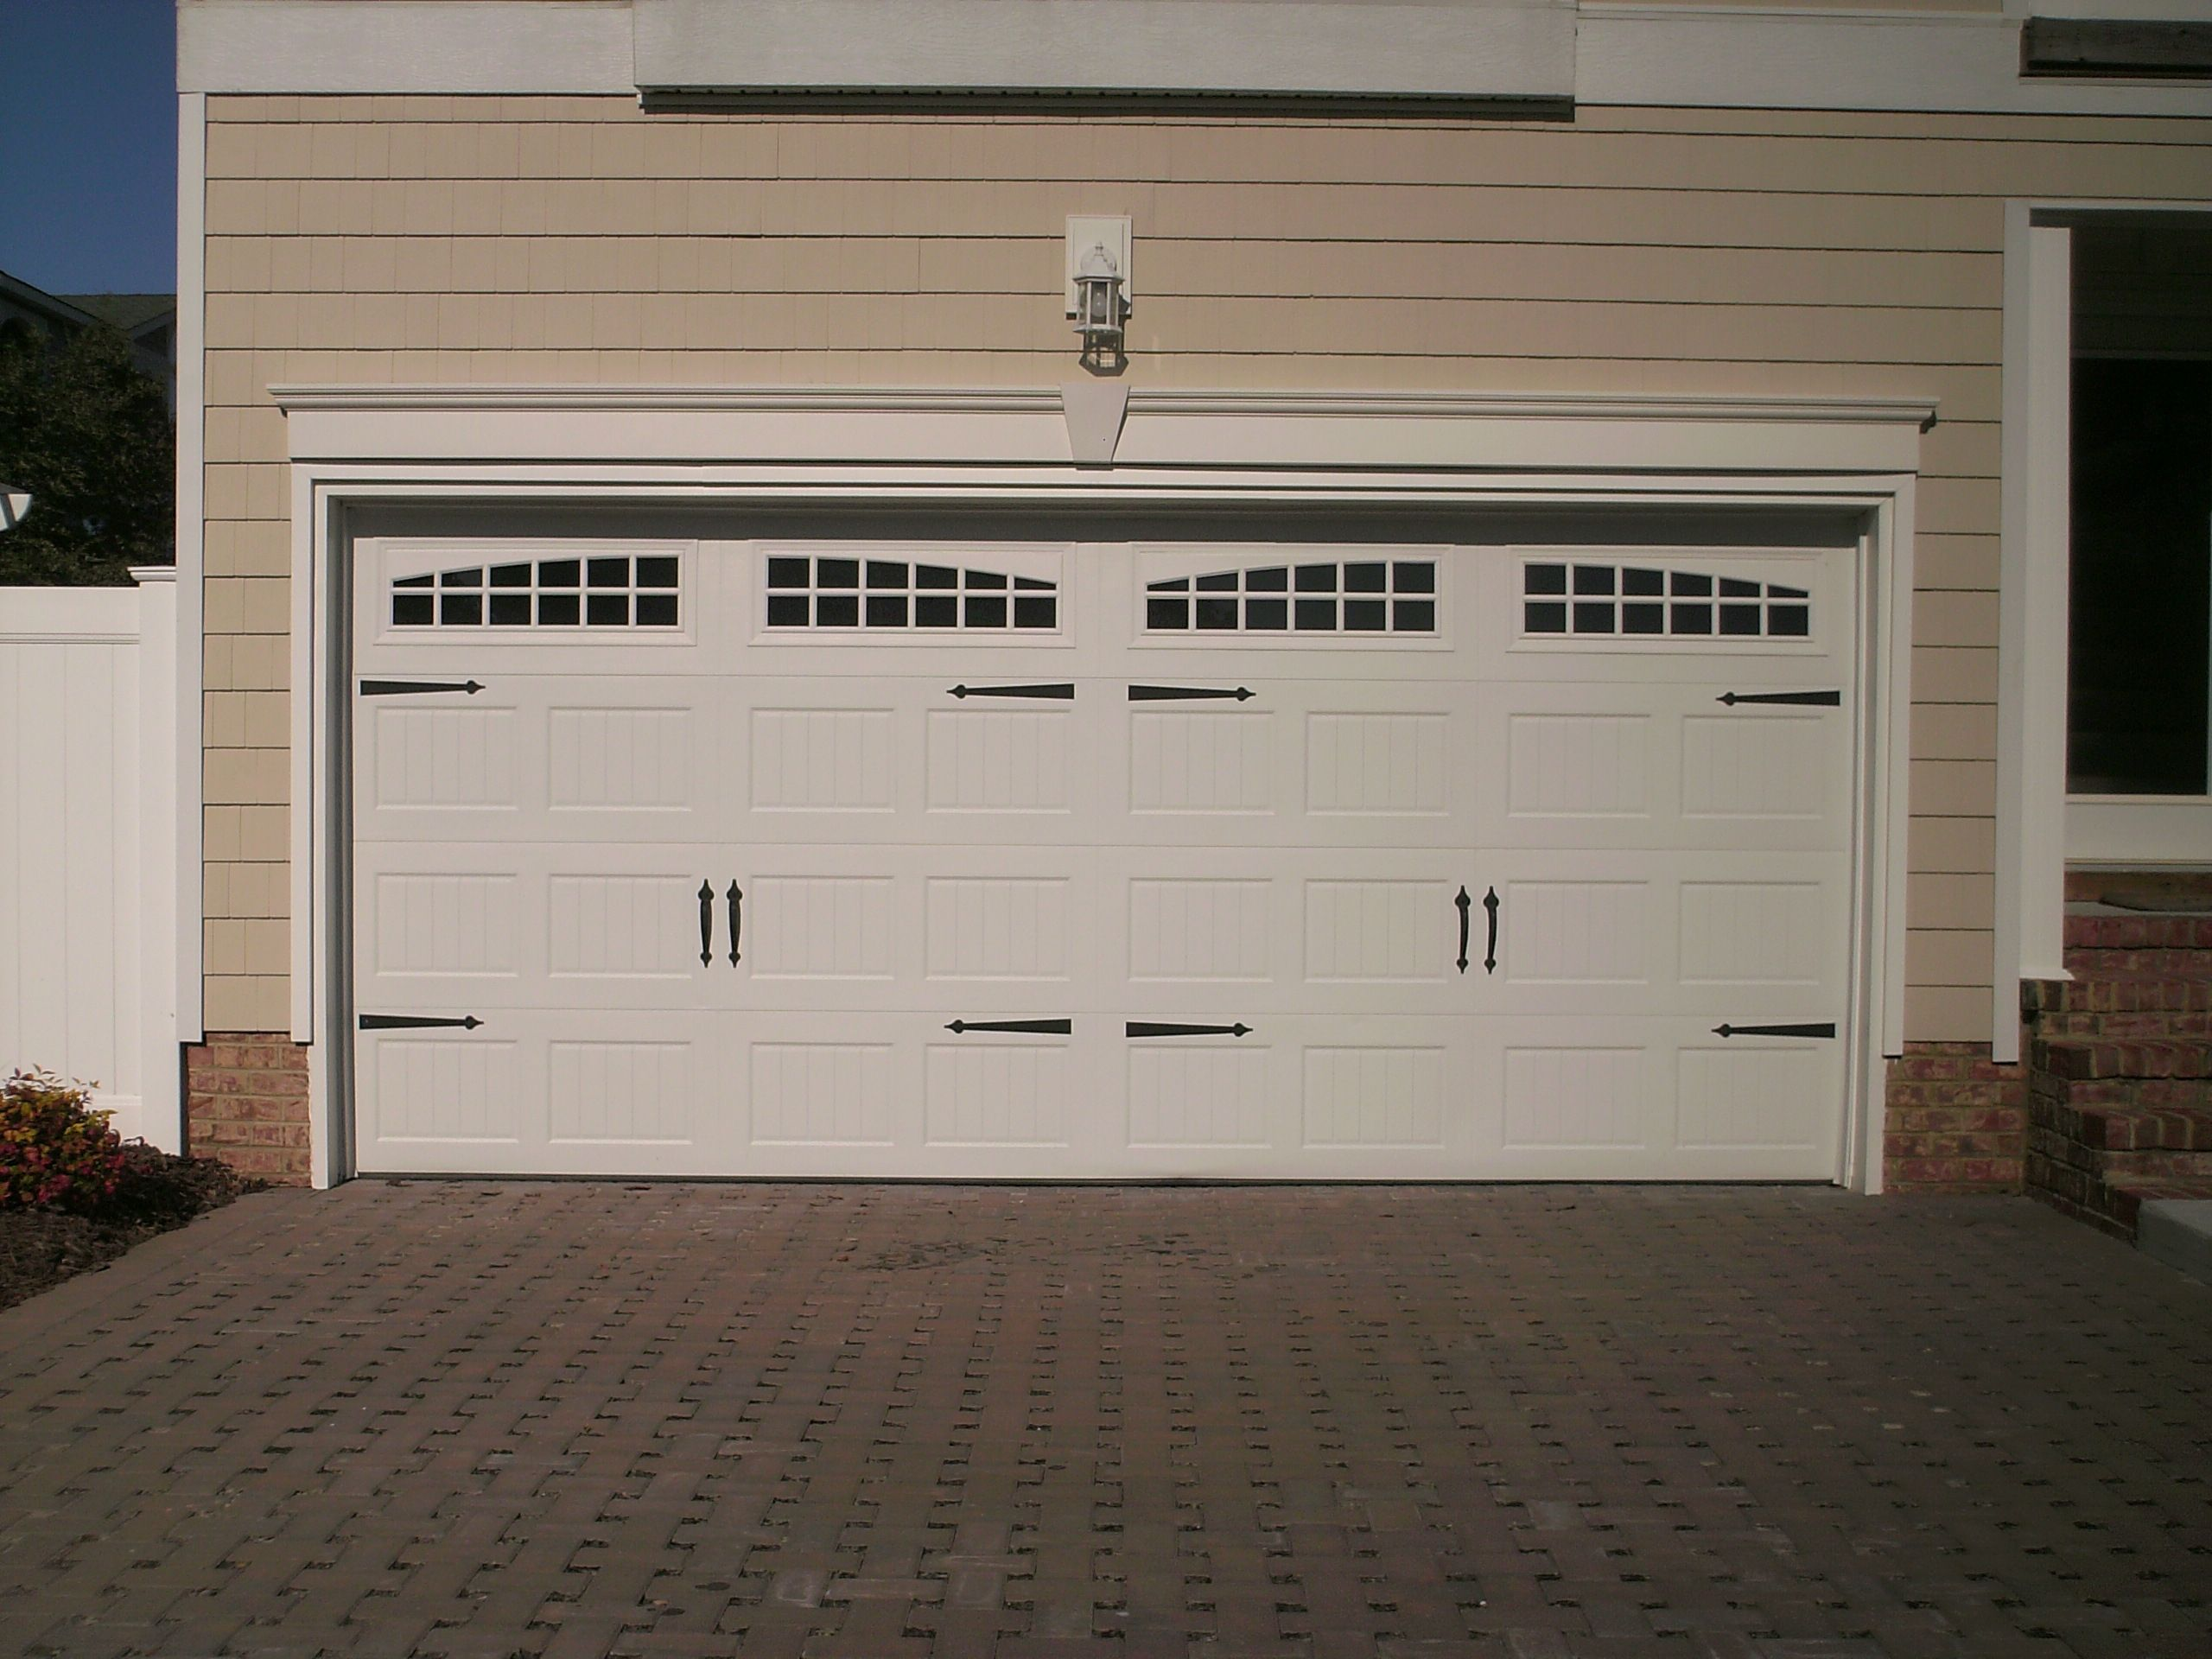 10 X 9 Insulated Garage Door Carriage Style Garage Doors Garage Doors Double Garage Door